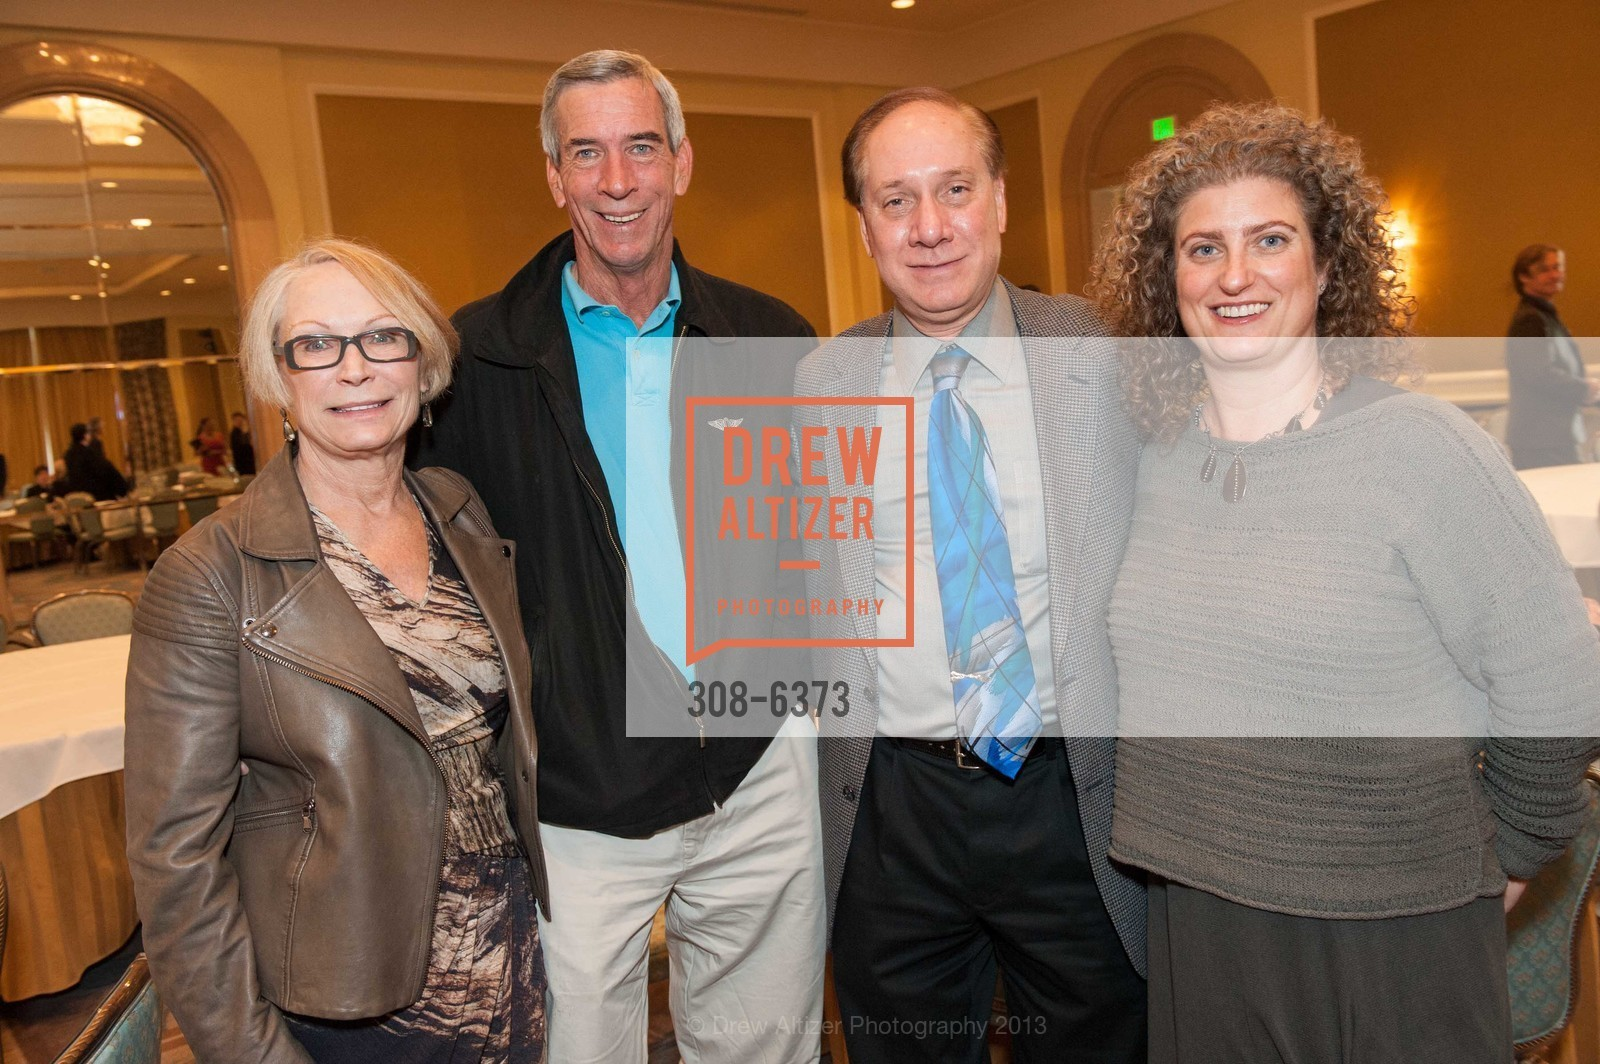 Millicent Buxton Smith, Dan McCurthy, Paul Christopher, Madeleine Lanske, Photo #308-6373